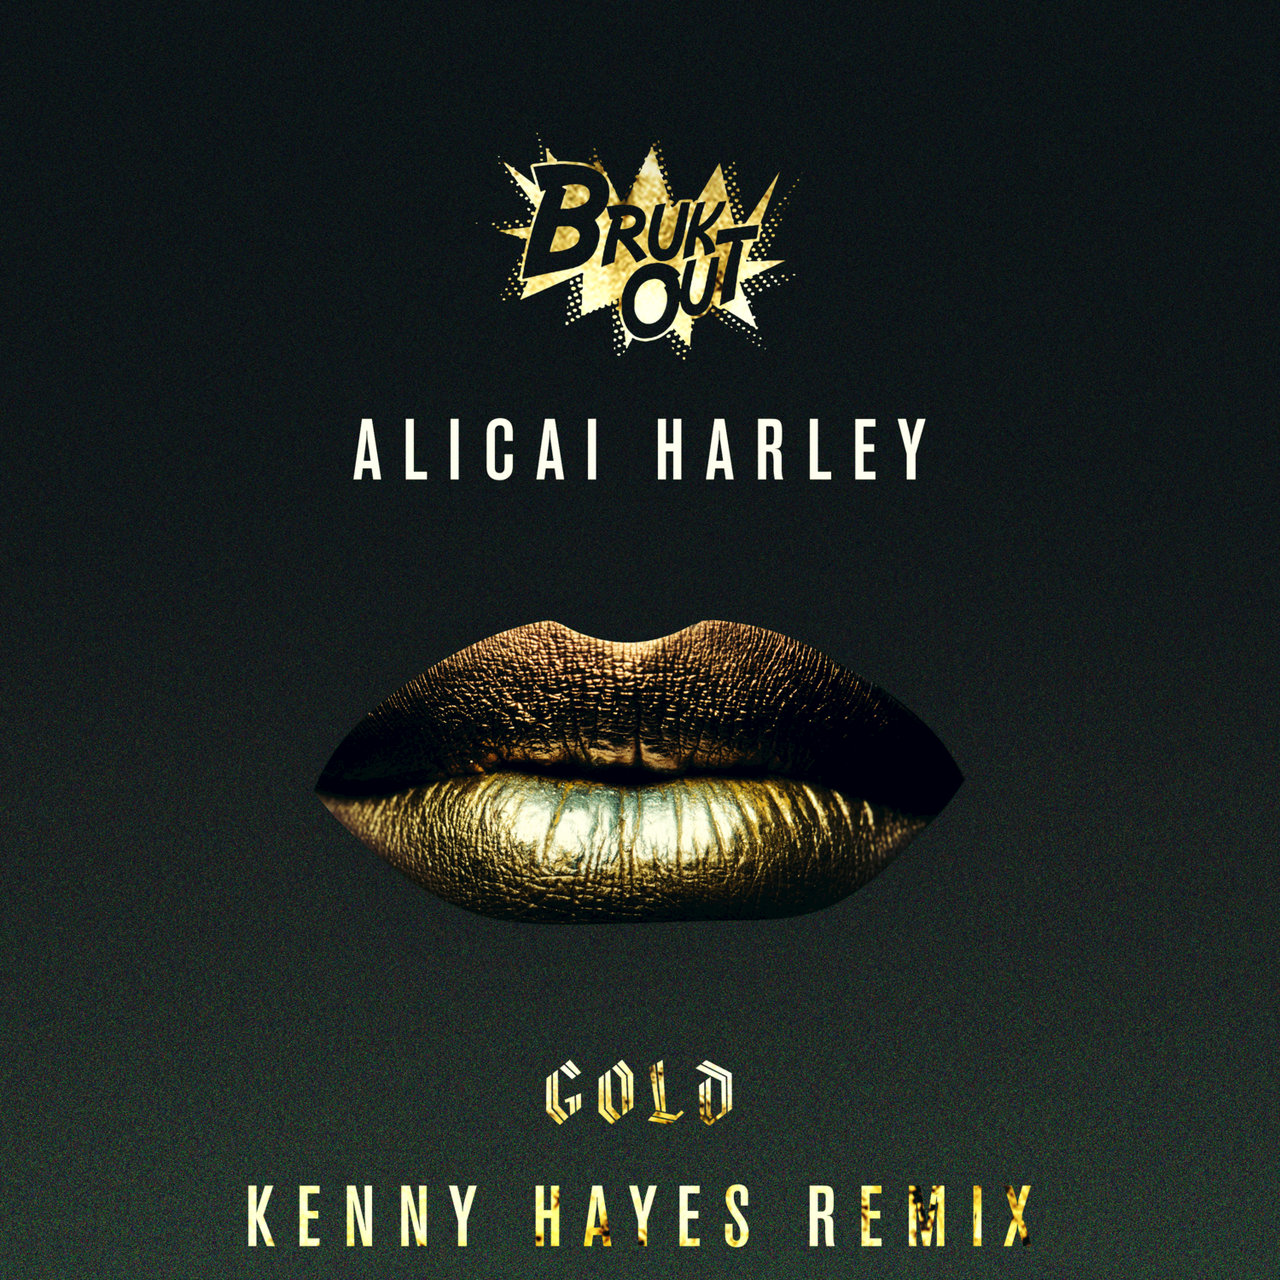 Gold (Kenny Hayes Remix)